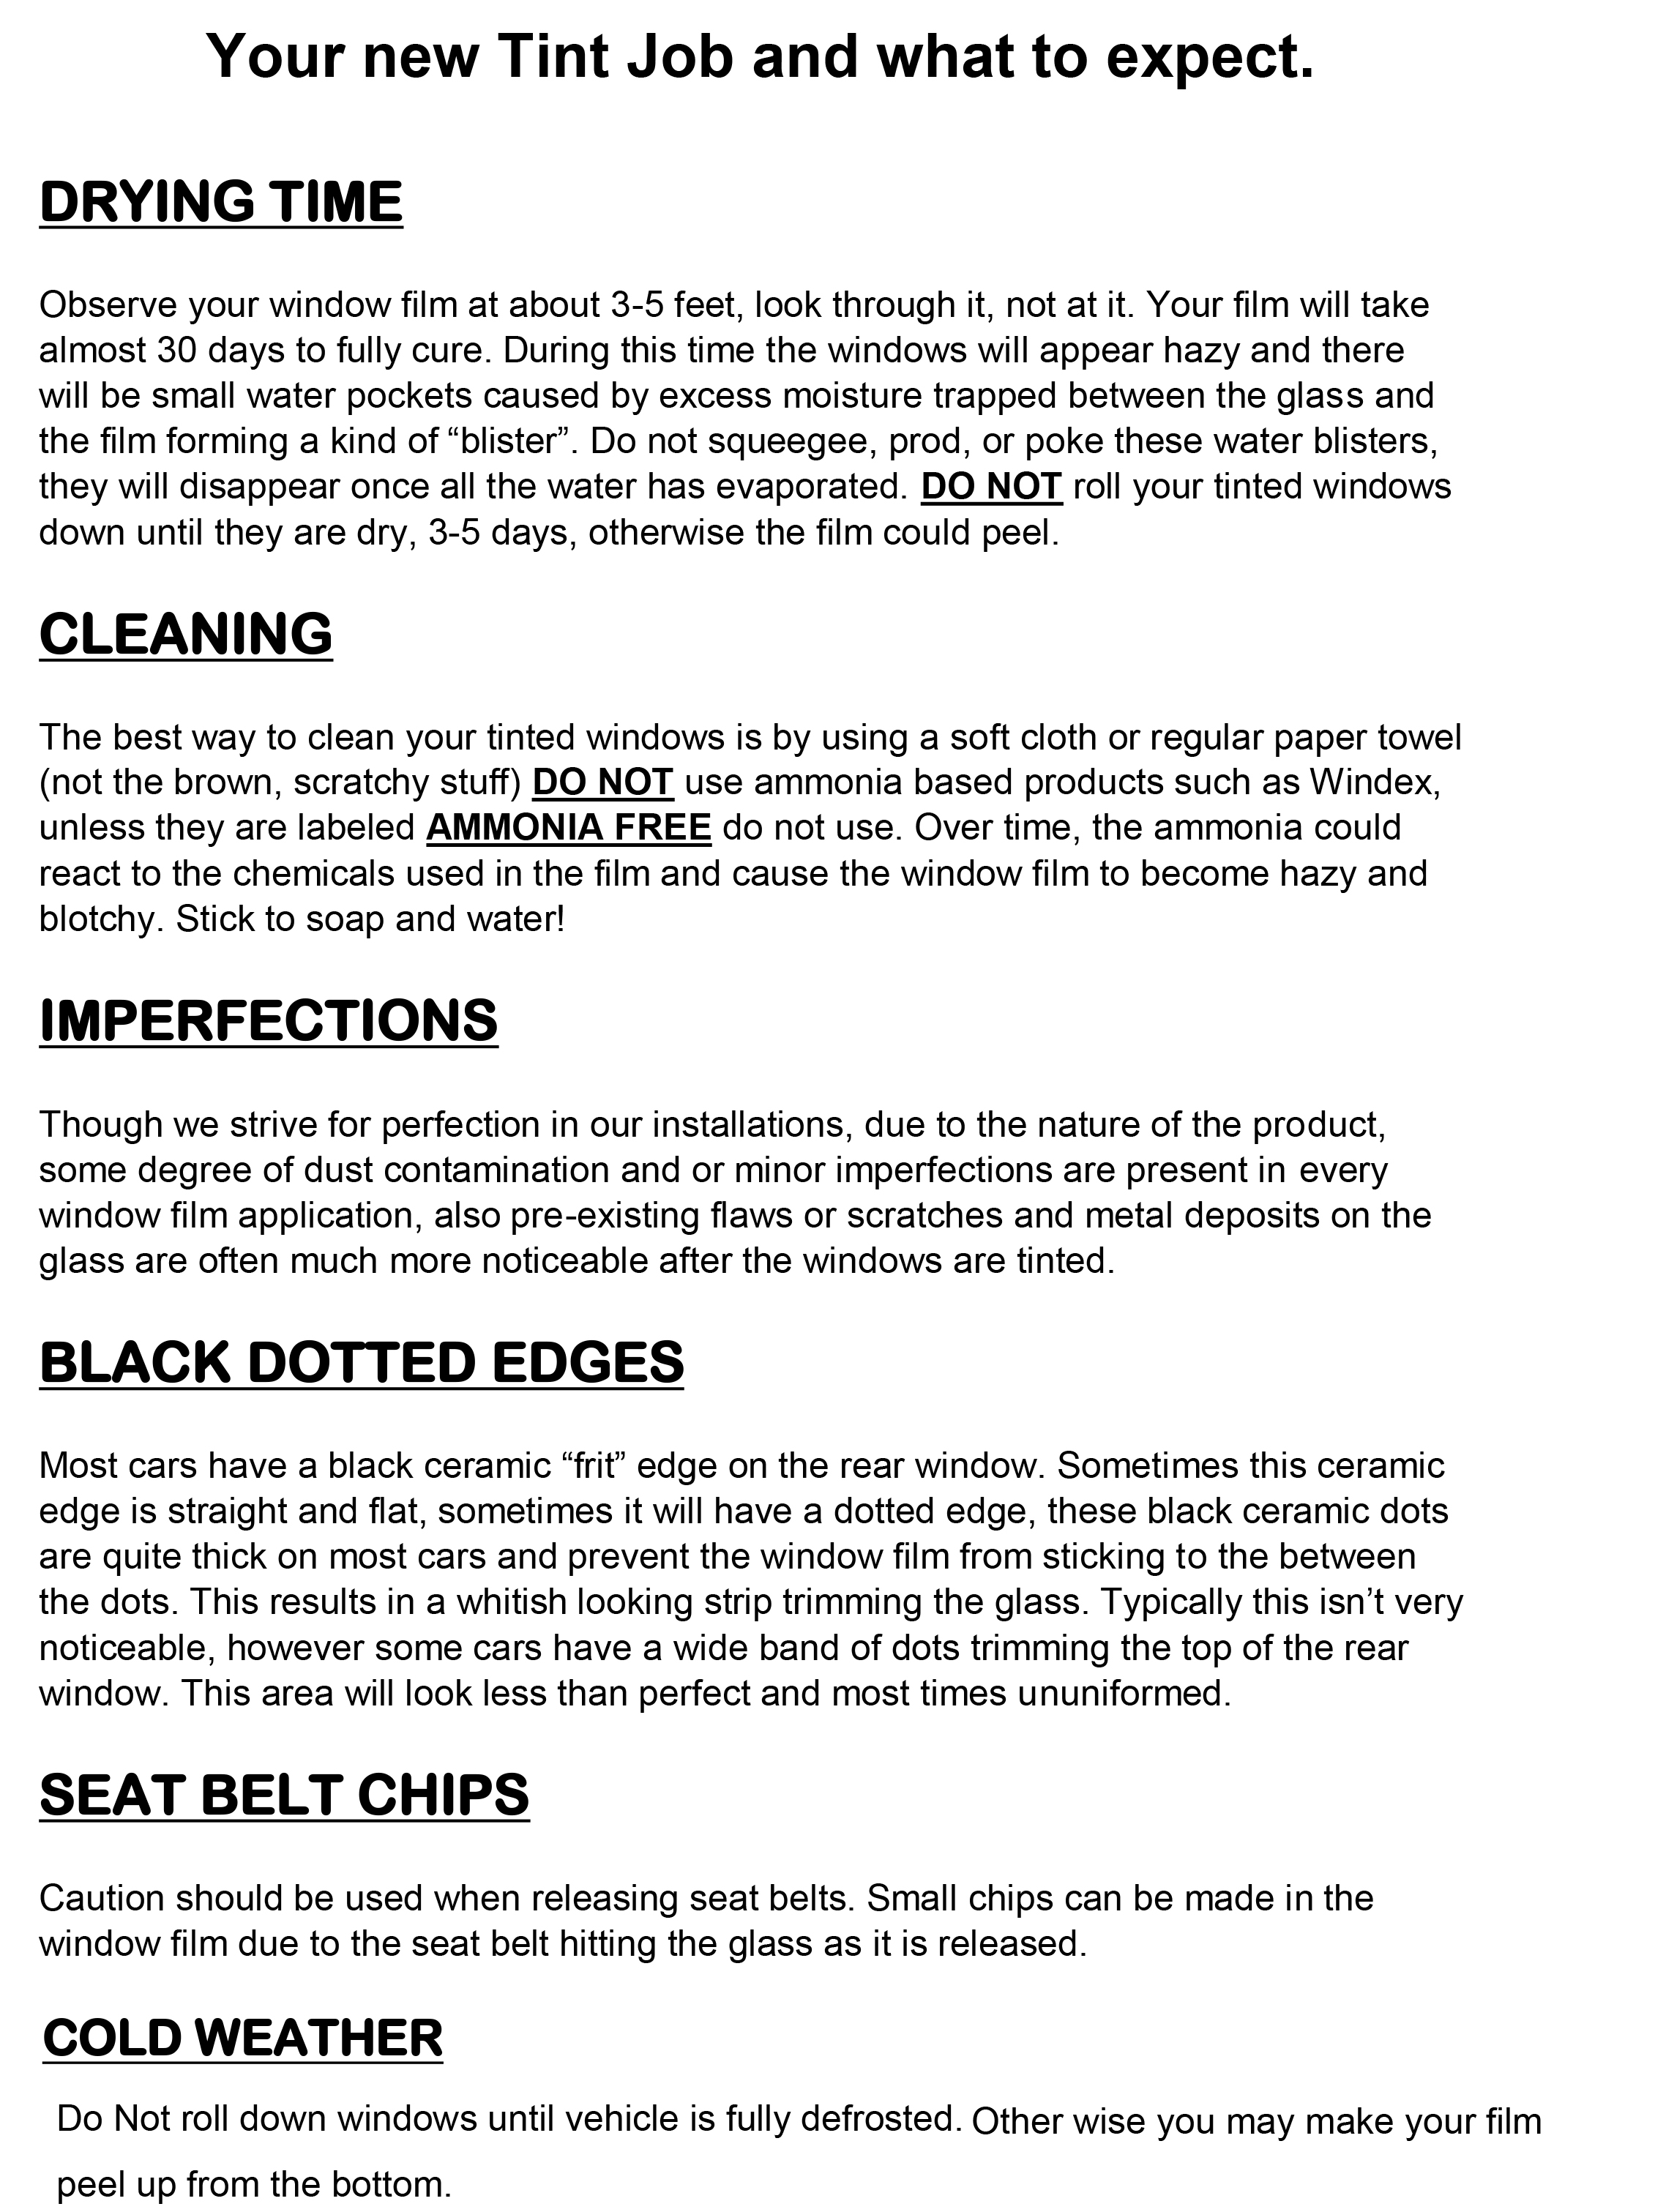 What To Expect From Your Tint Job - This is a sheet that makes delivering a tint job to the customer easy.We recommend going over the sheet with the customer and then giving a copy to the customer to take with them. This greatly reduces the phone calls with questions such as water blisters ect.